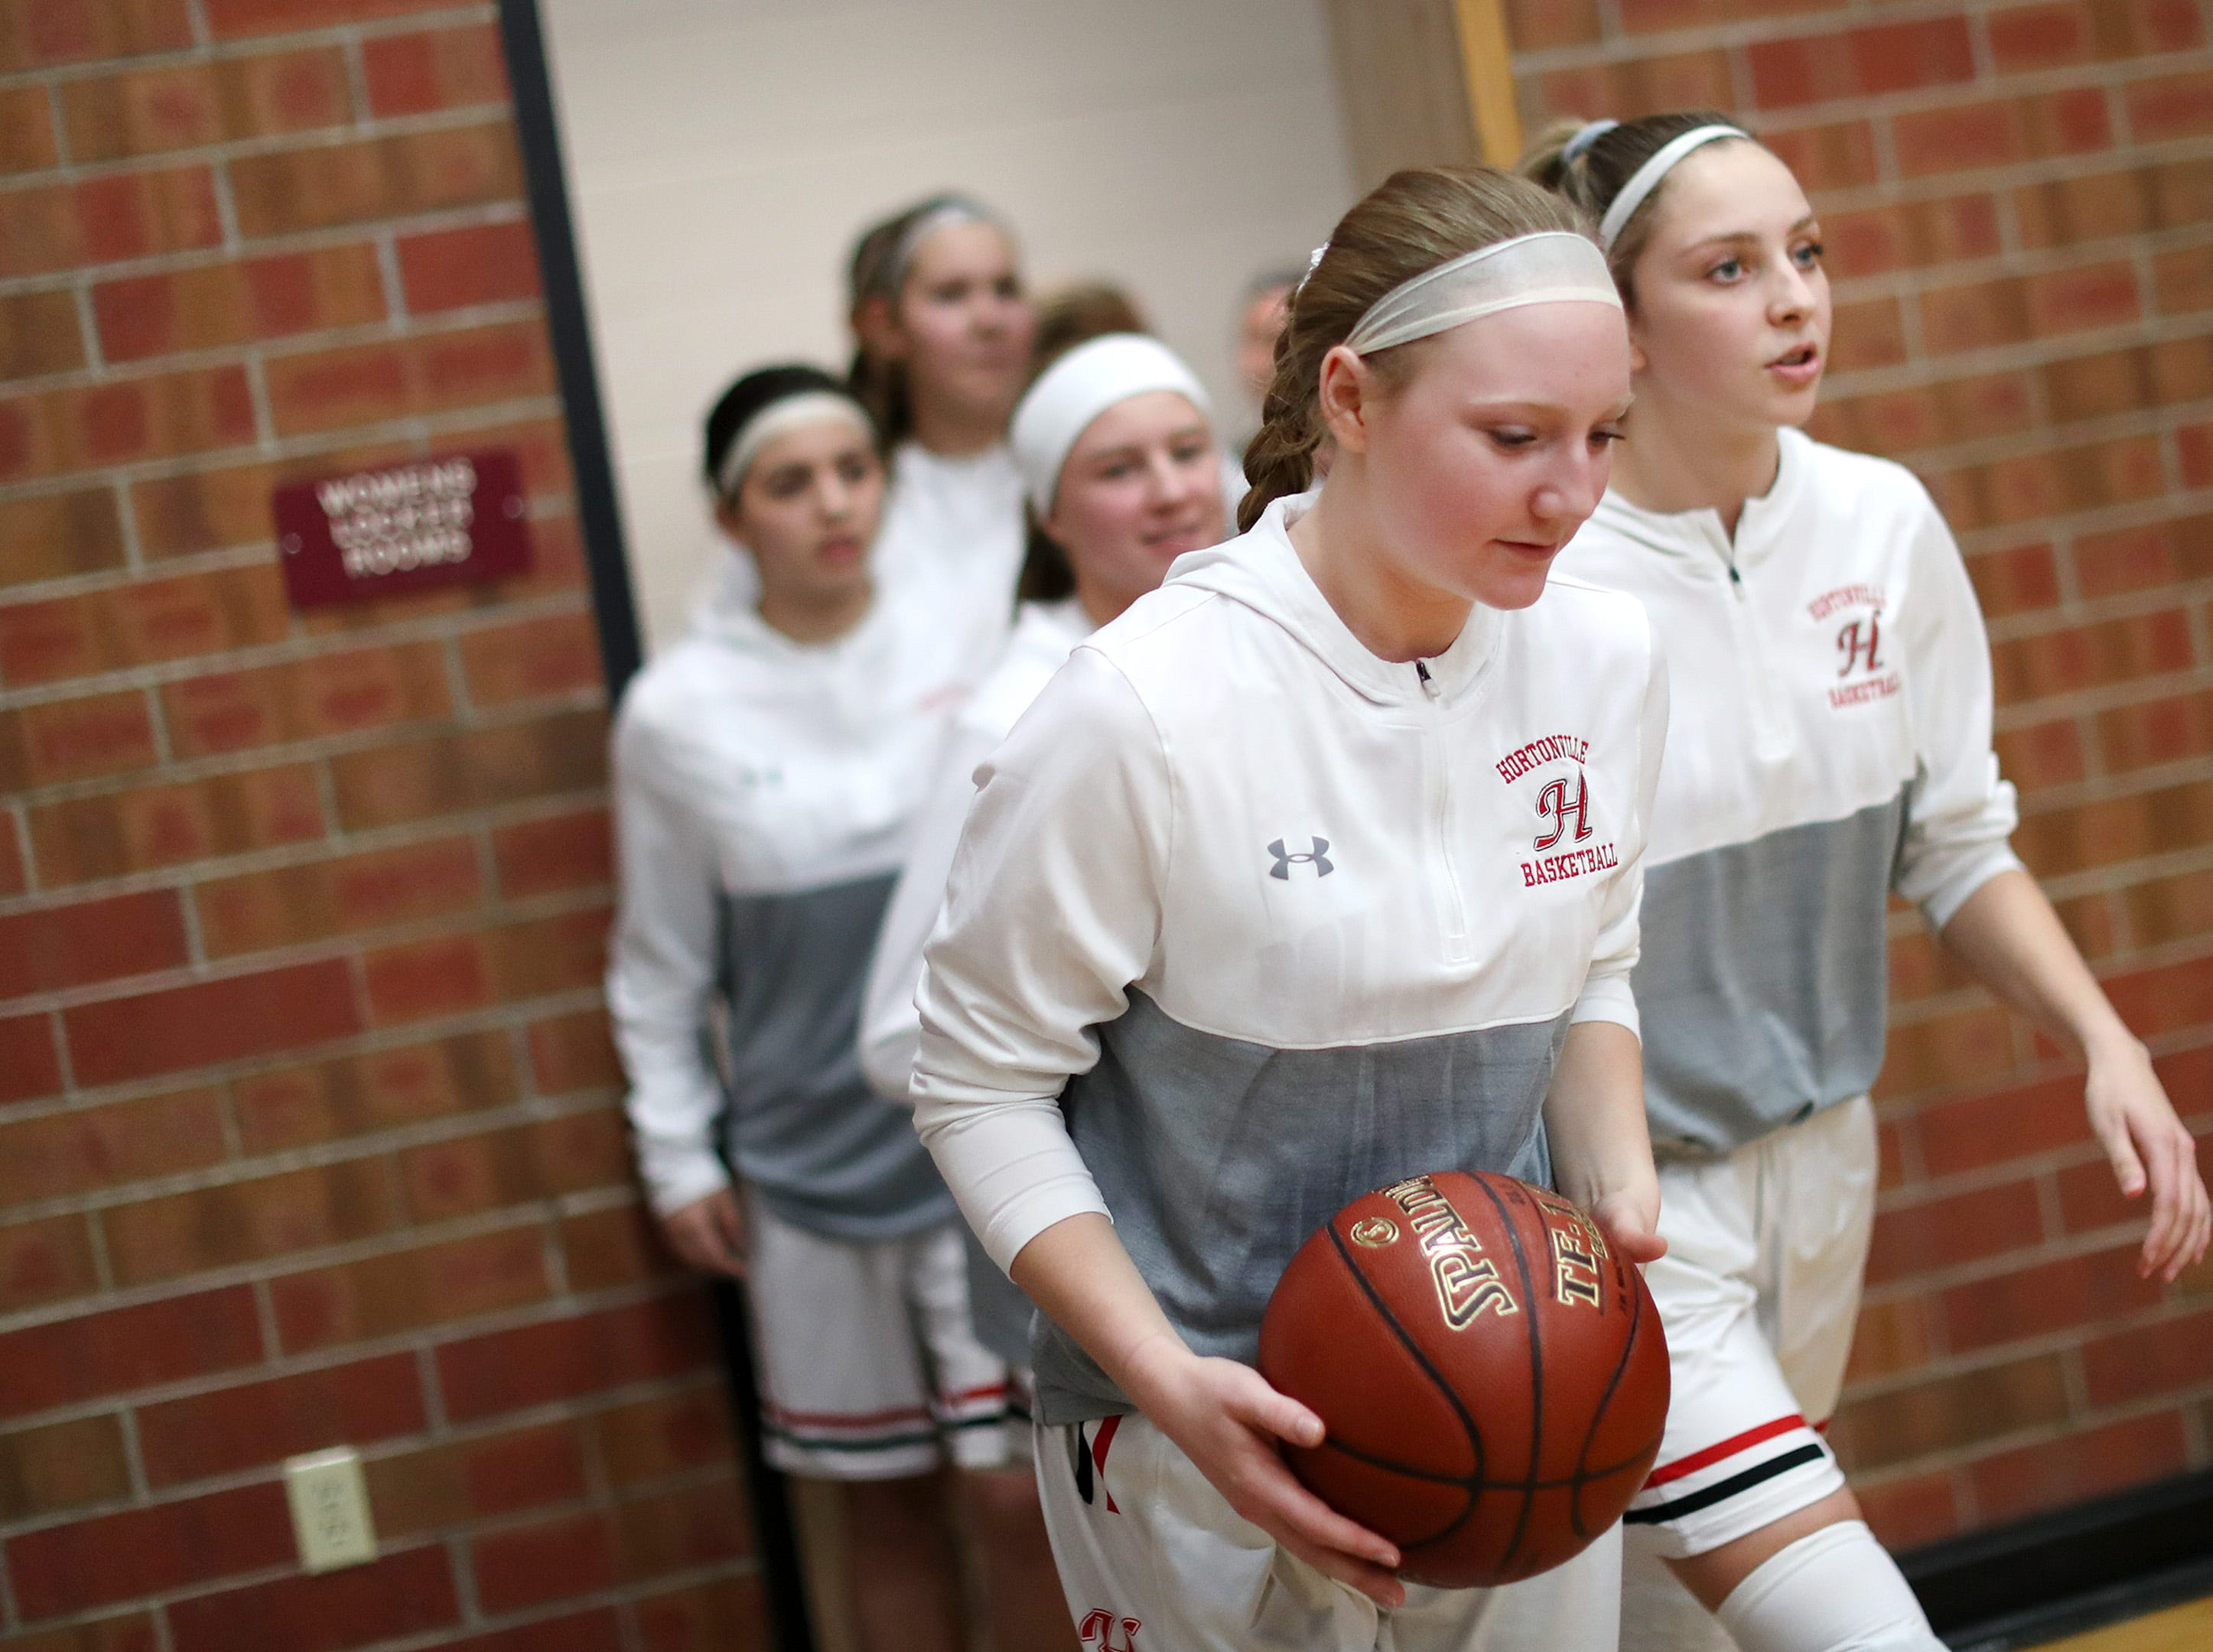 Hortonville High School's Morgan Draheim takes to the court before their game against Marshfield High School Thursday, Nov. 15, 2018, in Hortonville, Wis.